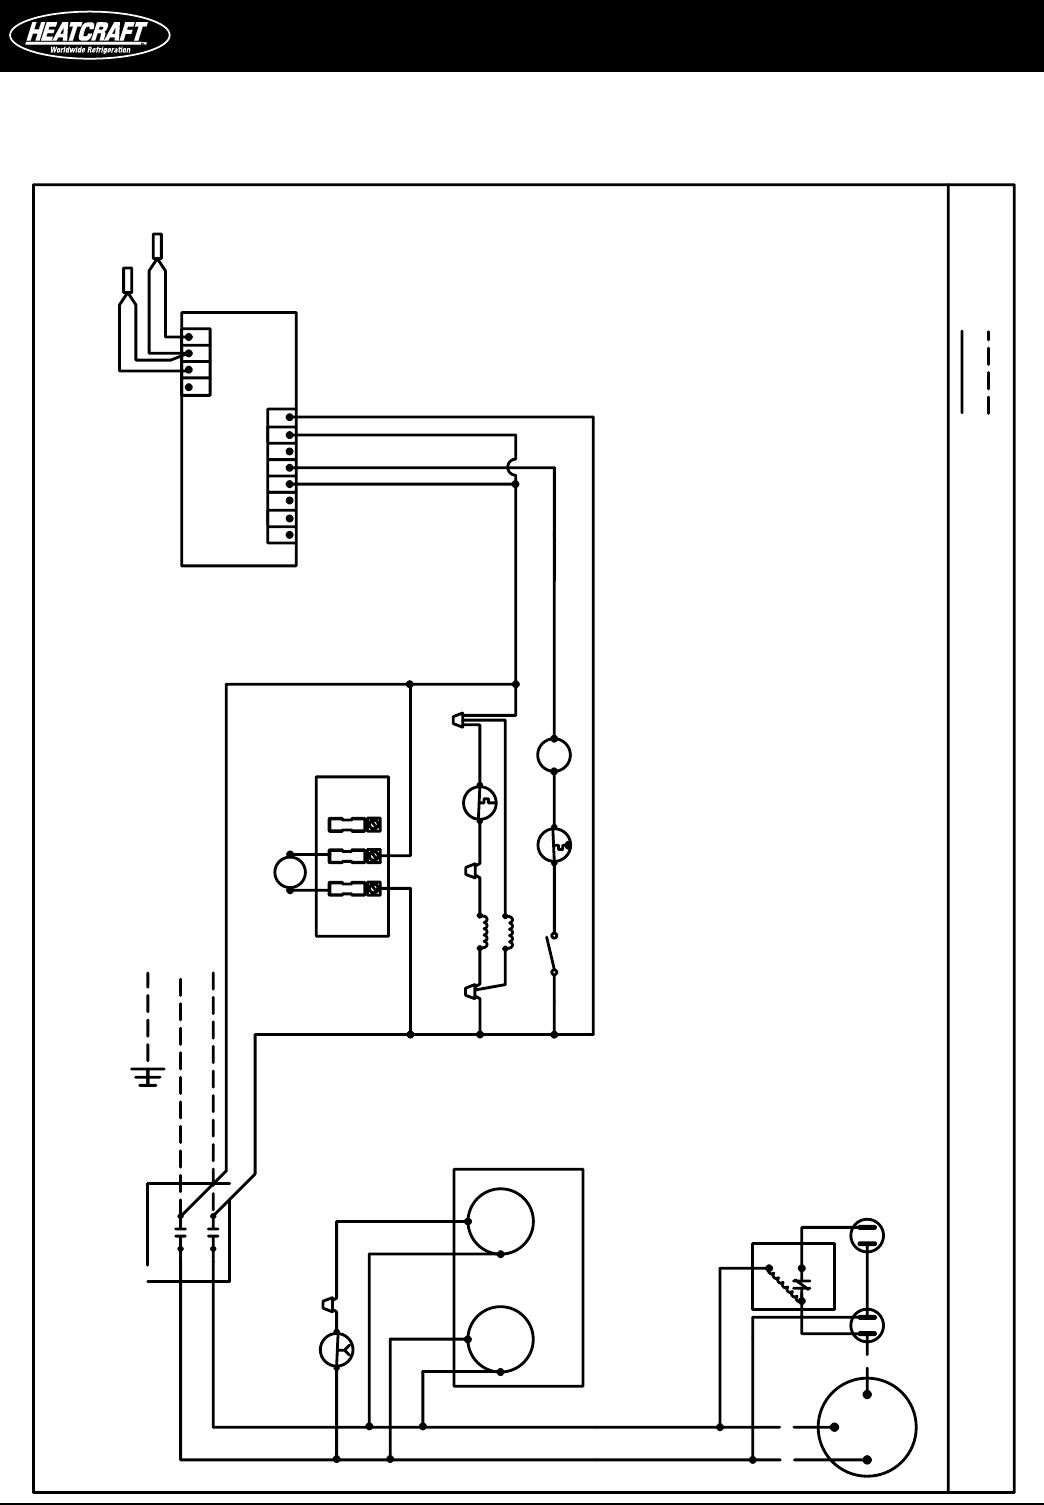 E38 Wiring Diagram Free Download Wiring Diagrams Pictures Wiring